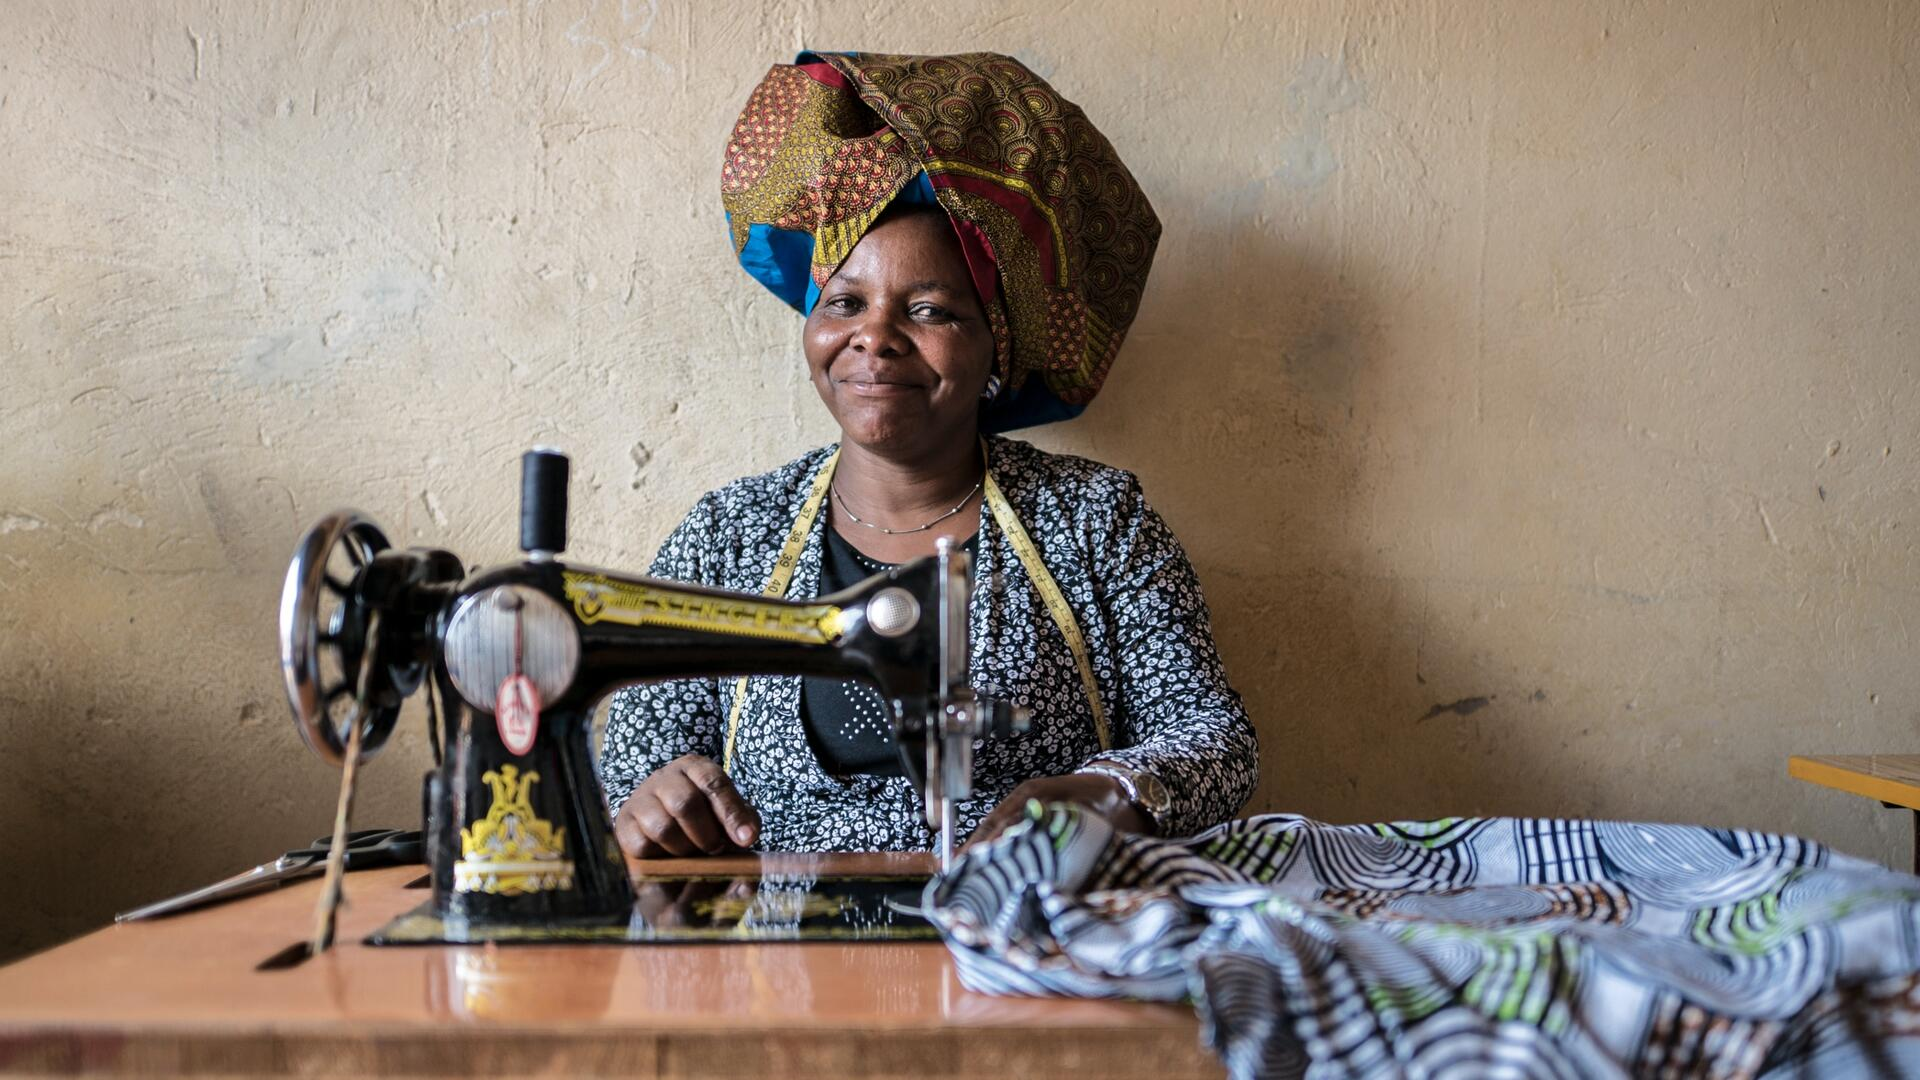 Domitila Kaliya, a Congolese refugee, smiles as she sits at her sewing machine